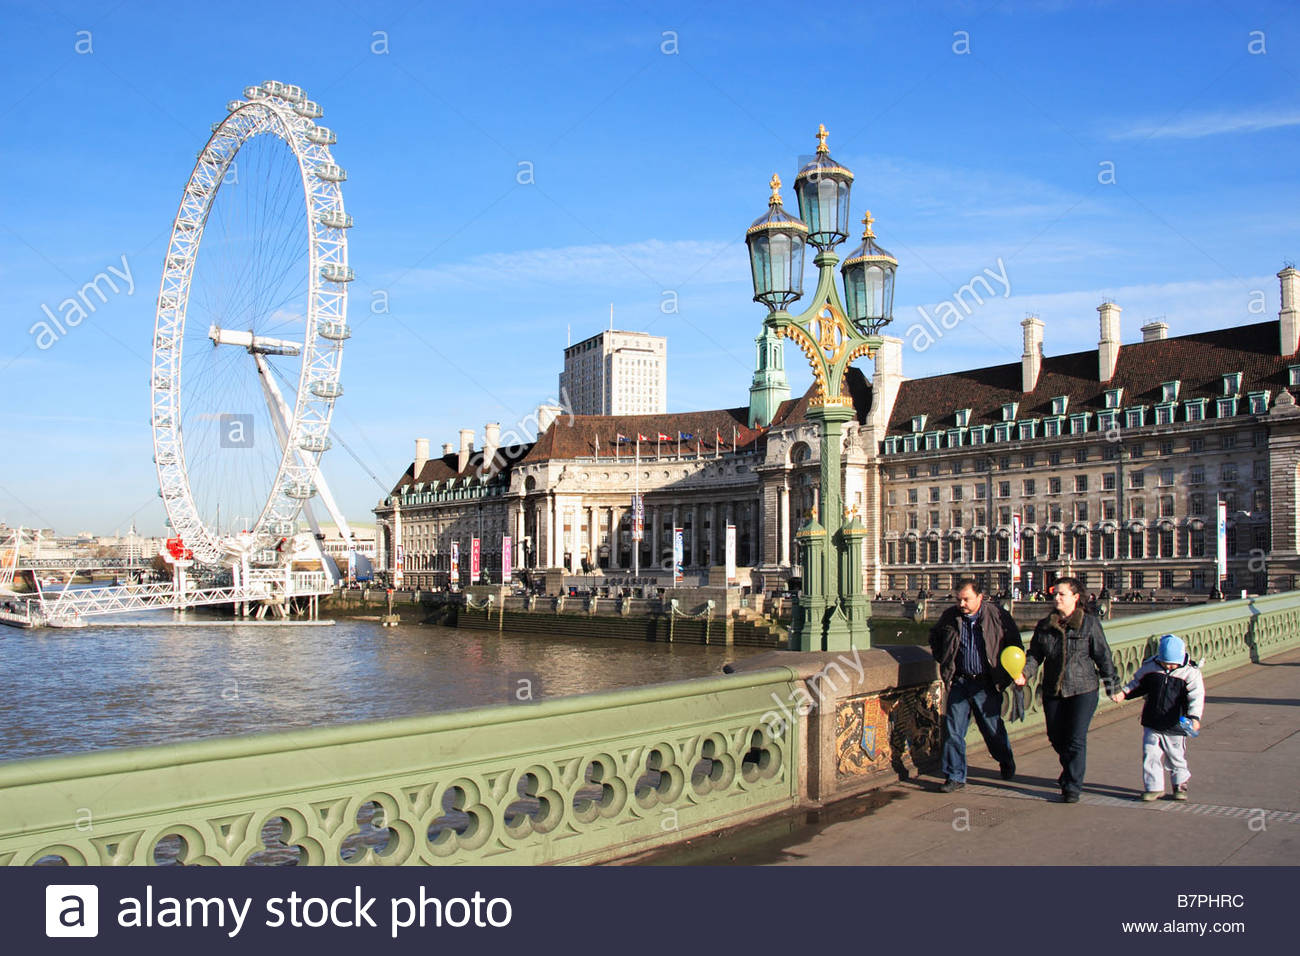 The London Eye beyond the River Thames - Stock Image